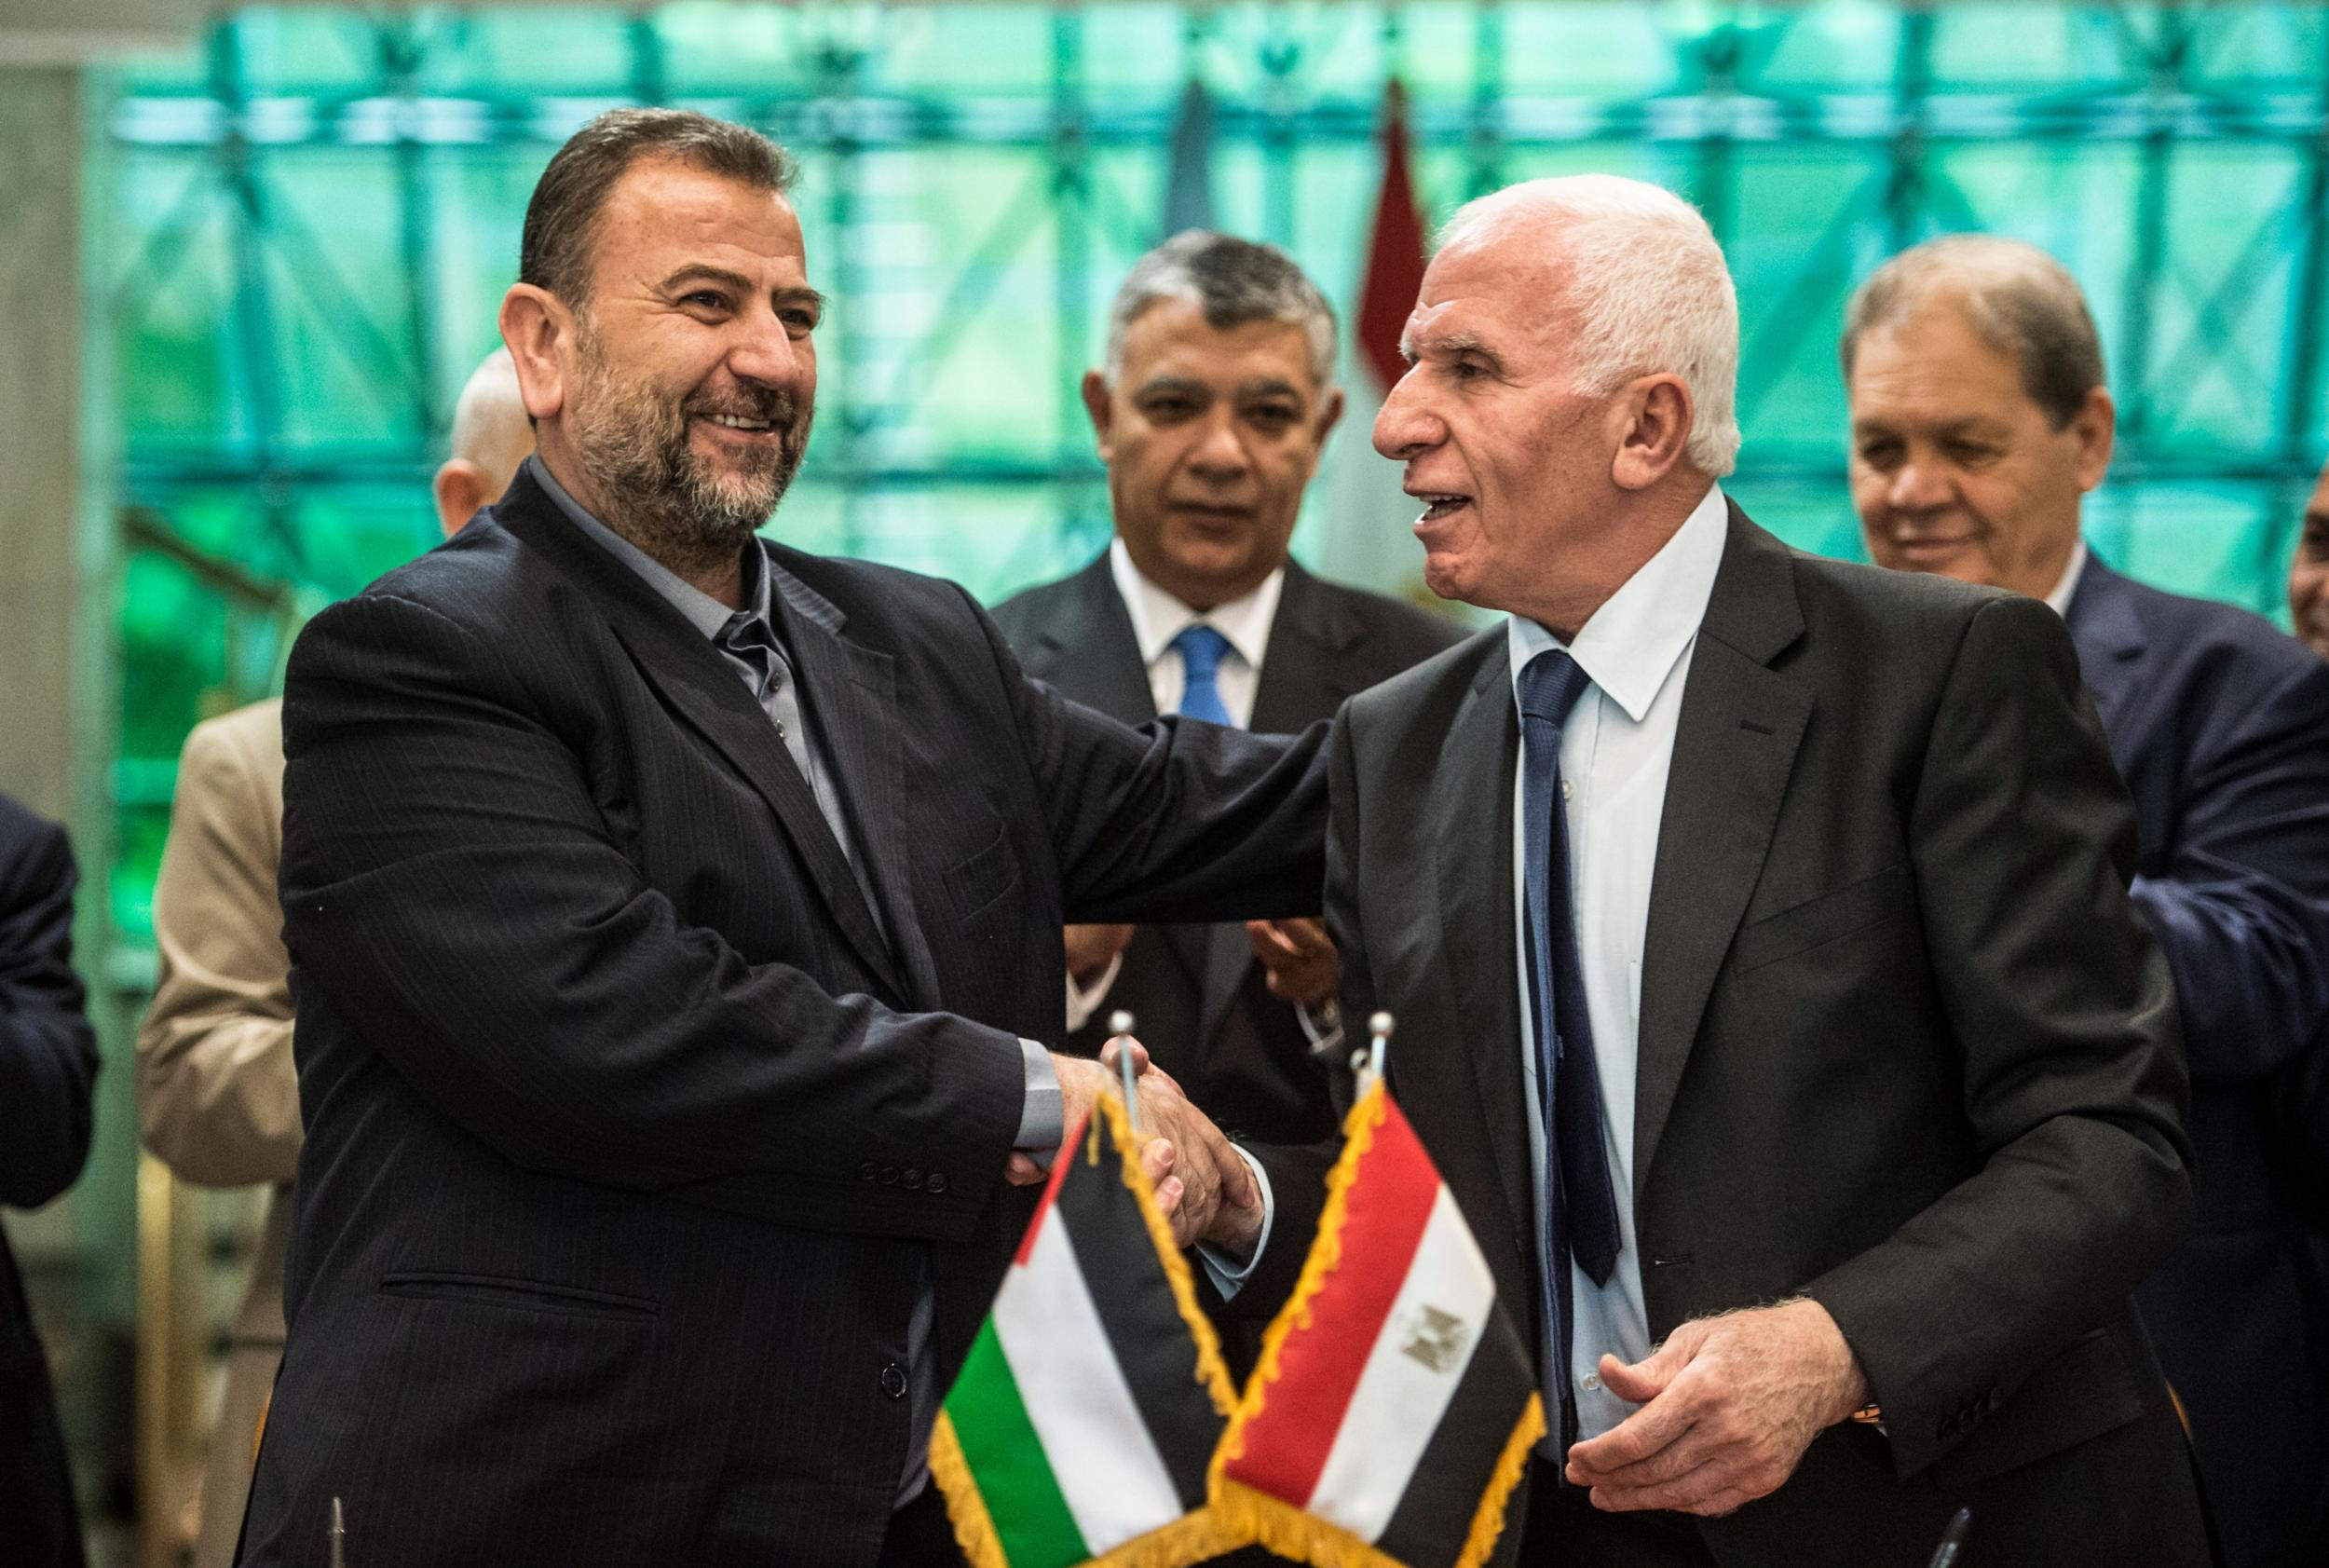 Palestinian factions Fatah and Hamas sign reconciliation deal in major breakthrough - World  news - NewsLocker